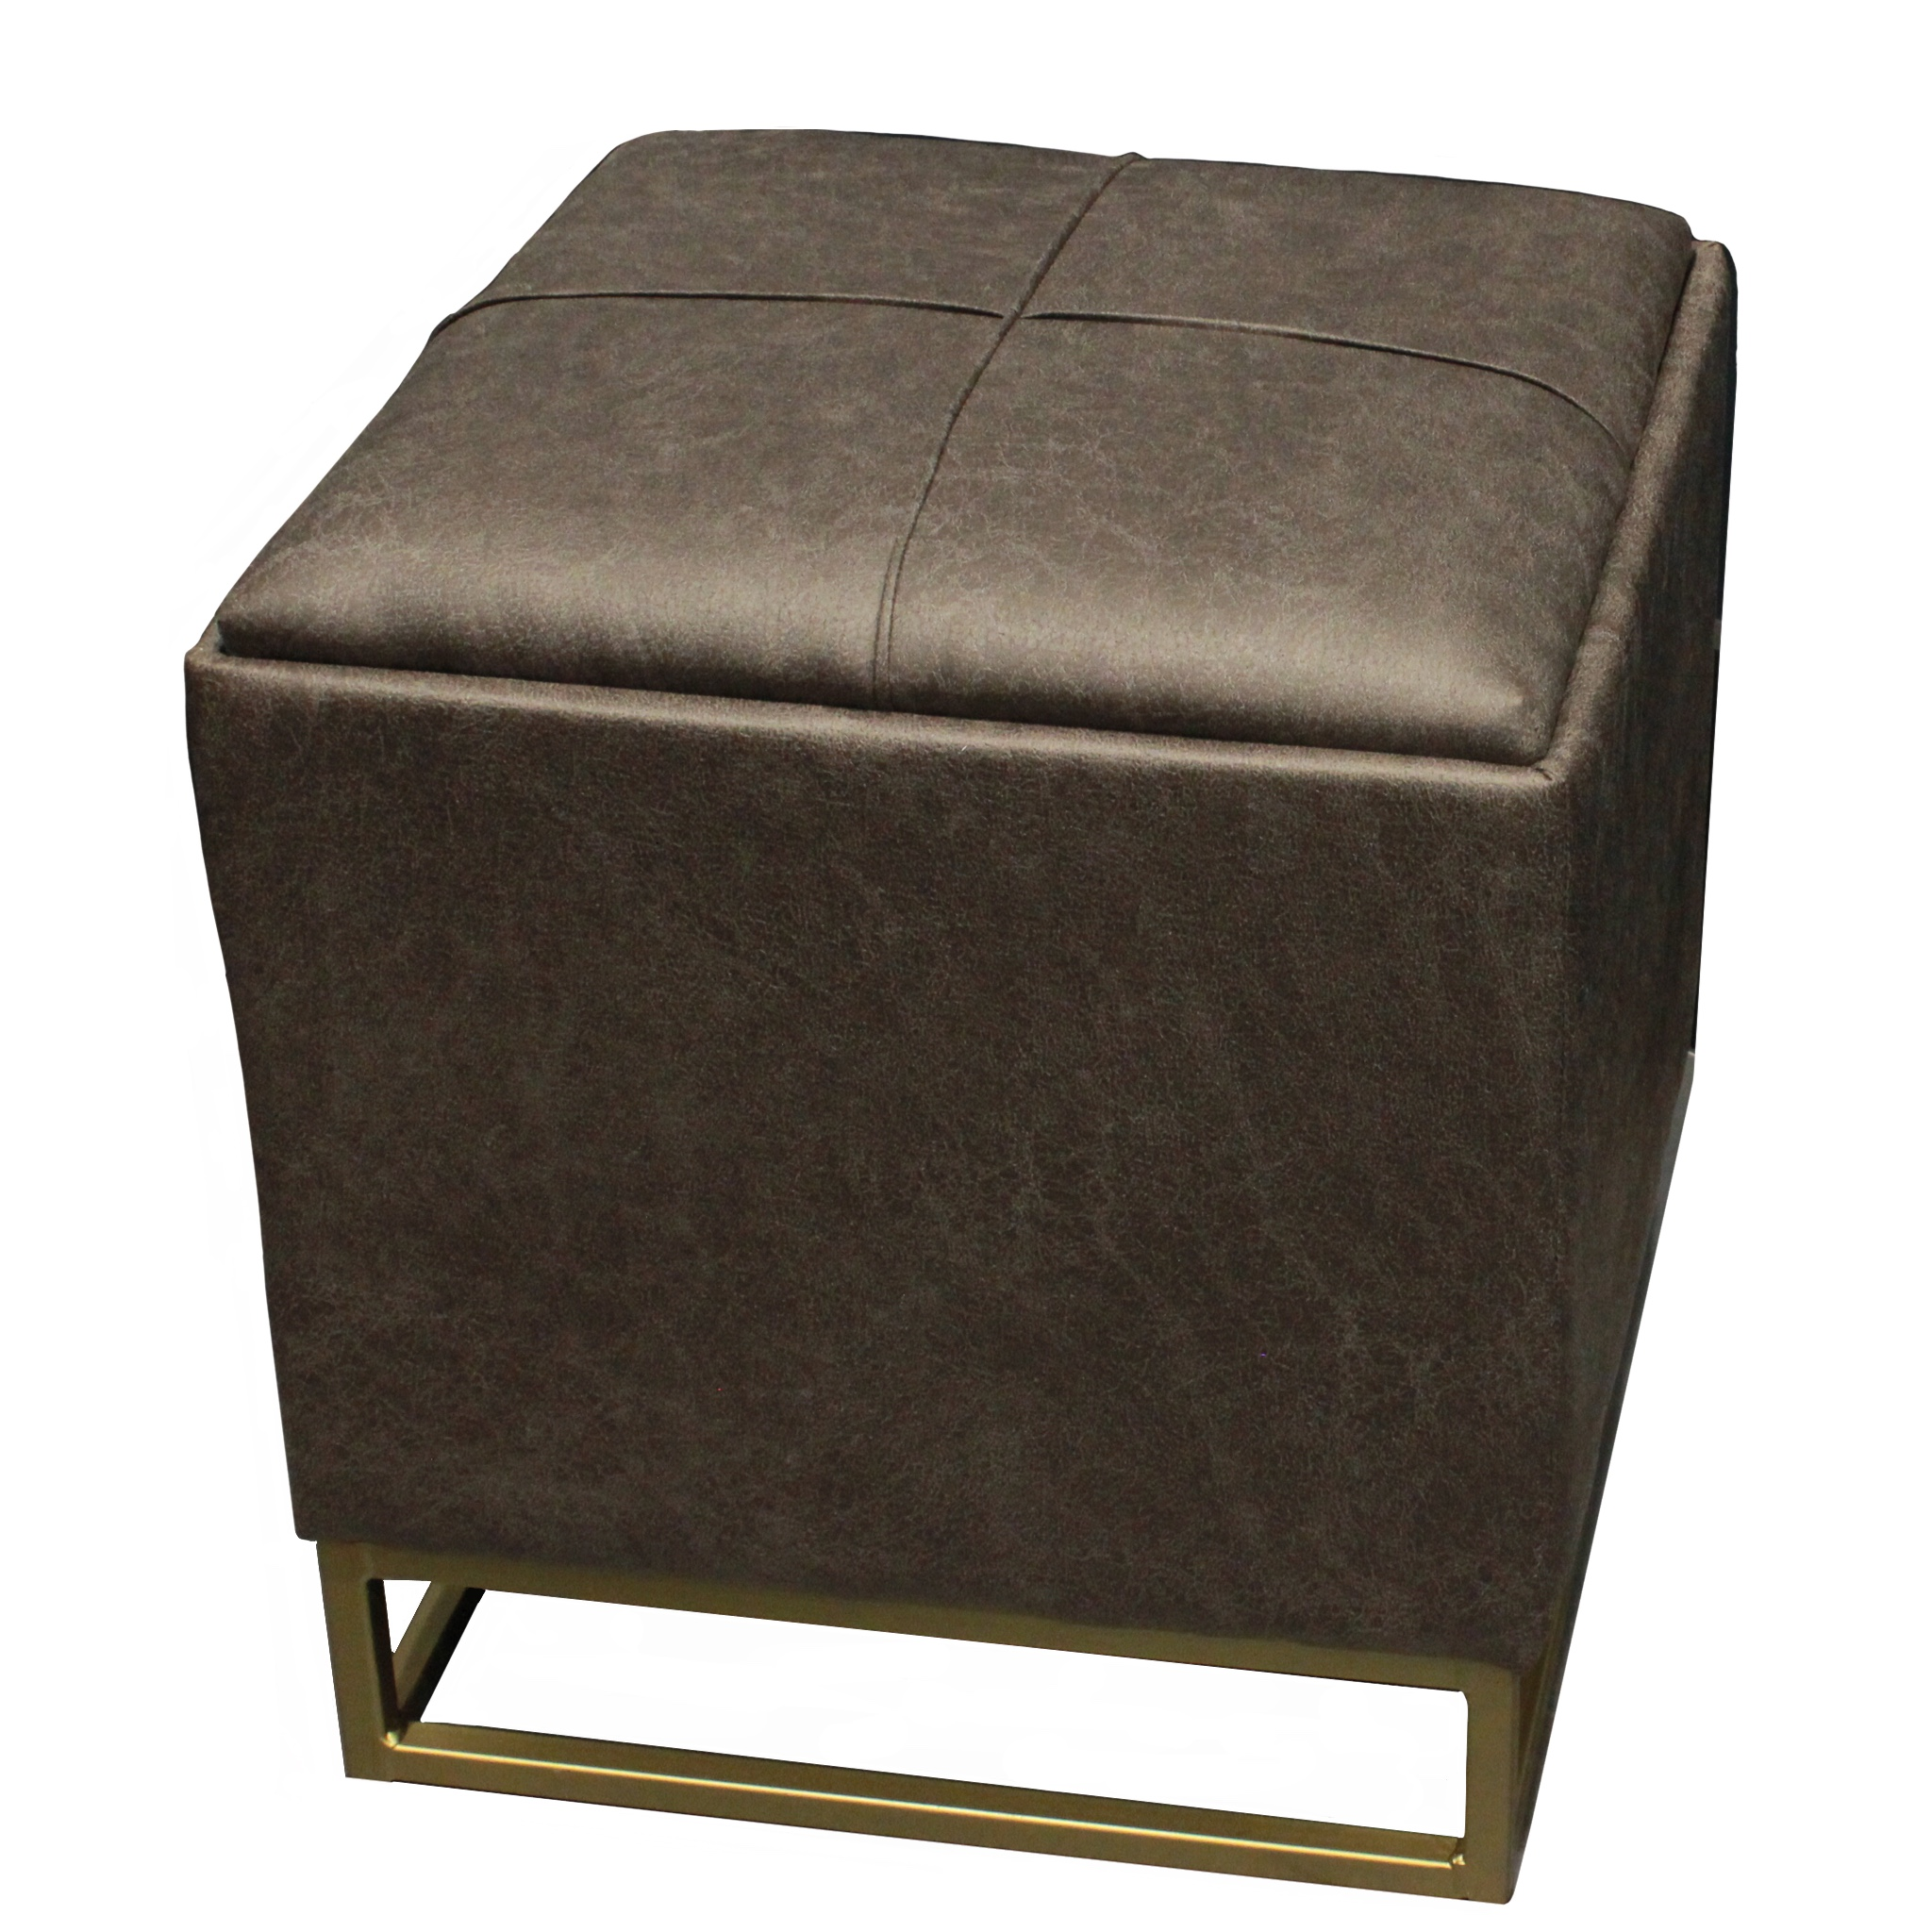 design guild faux leather ottoman footrest with storage compartment dark gray walmart com